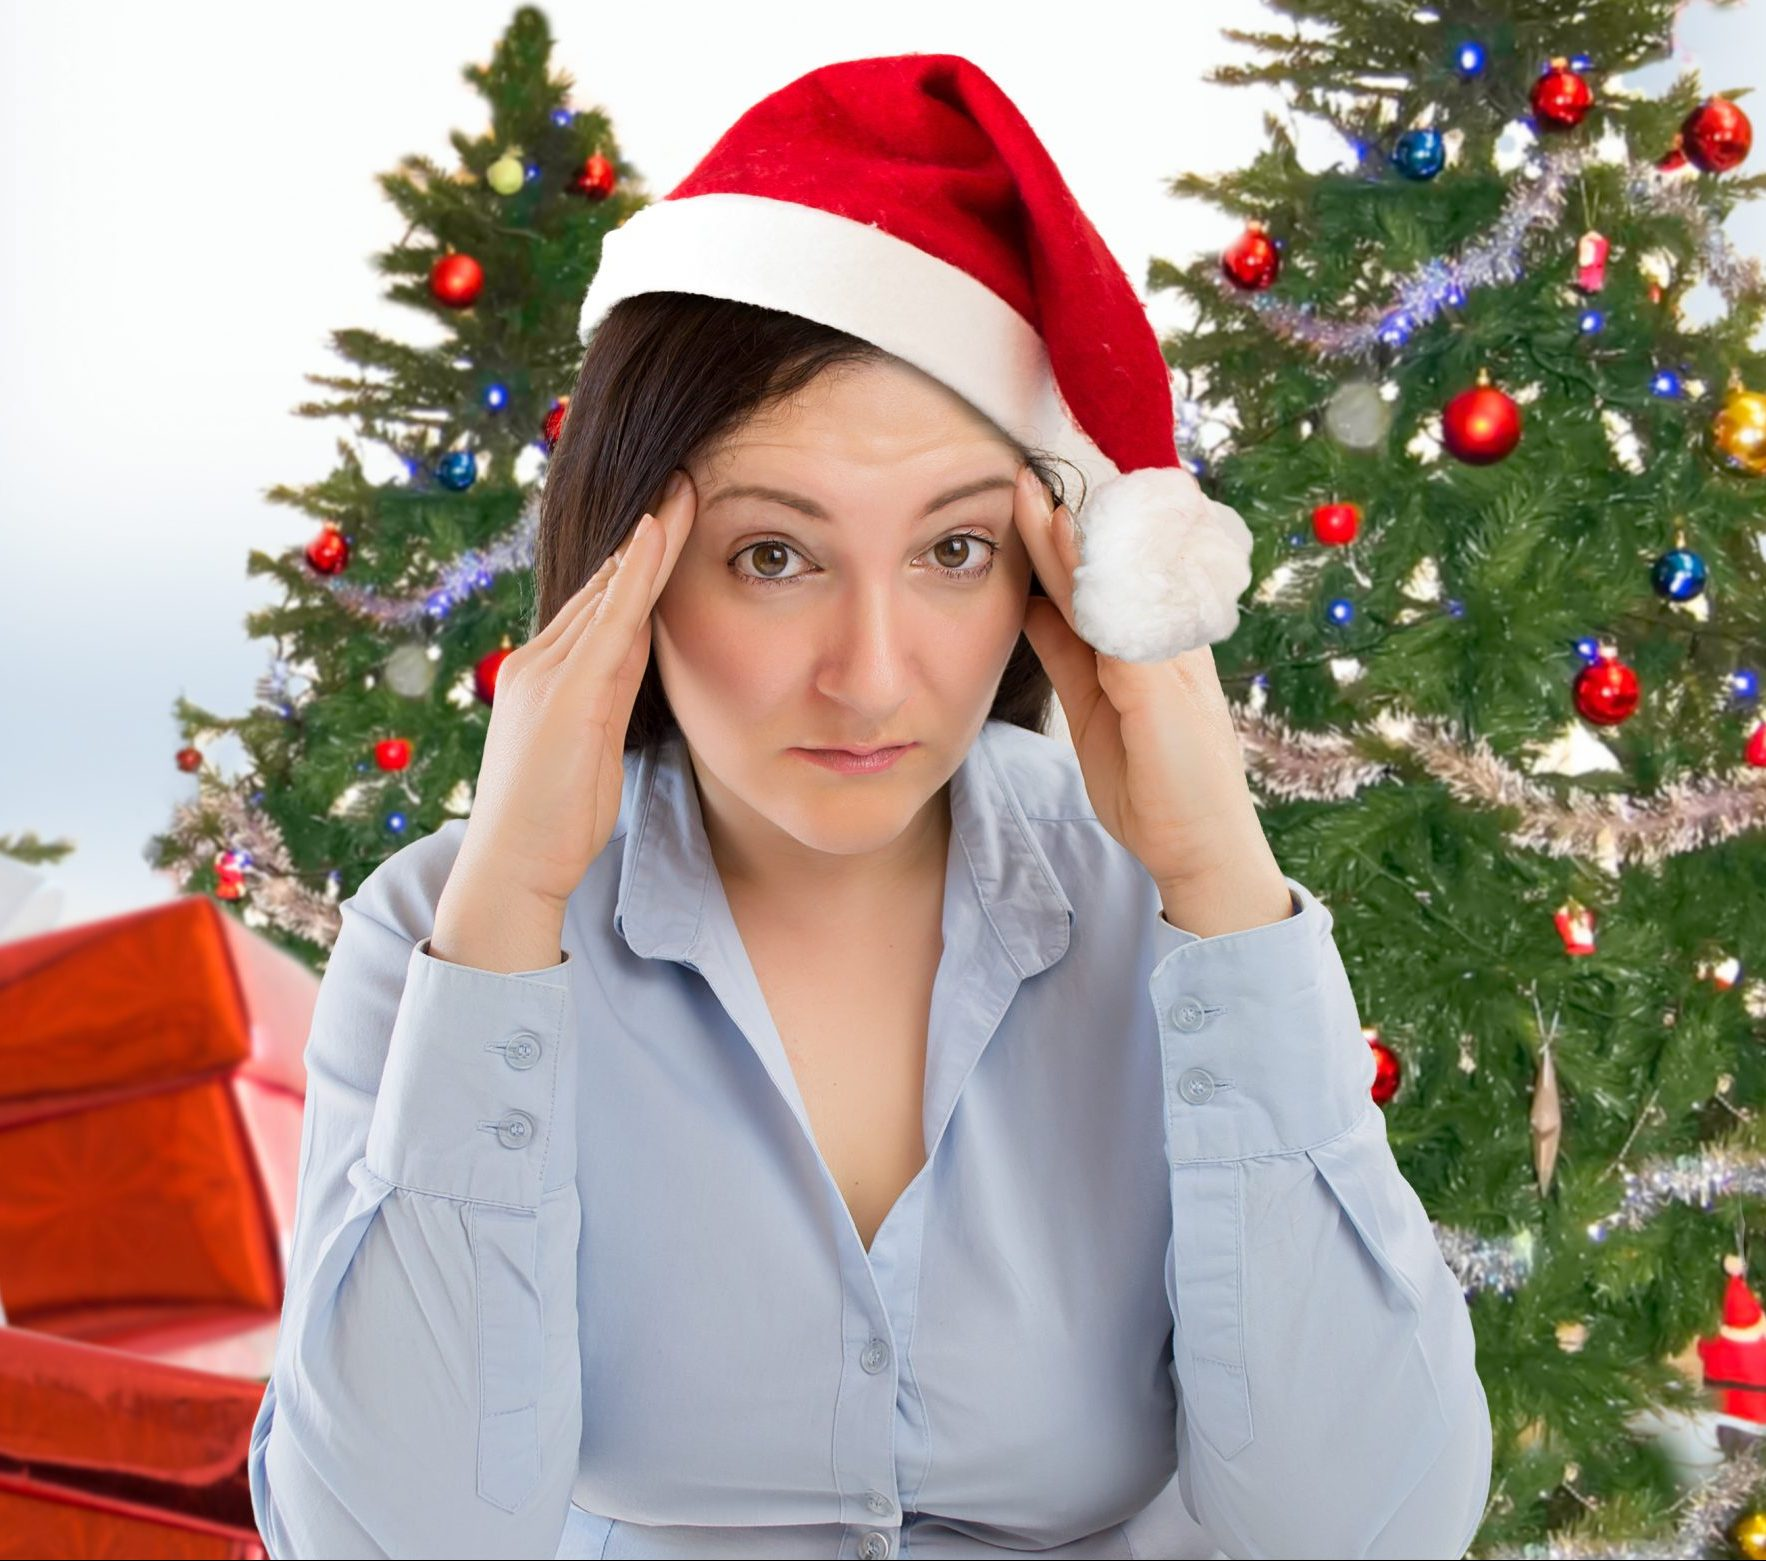 Recycling Schedule 2021 Miami Dade Christmas How And Where To Recycle Your Christmas Tree In Miami Miami On The Cheap